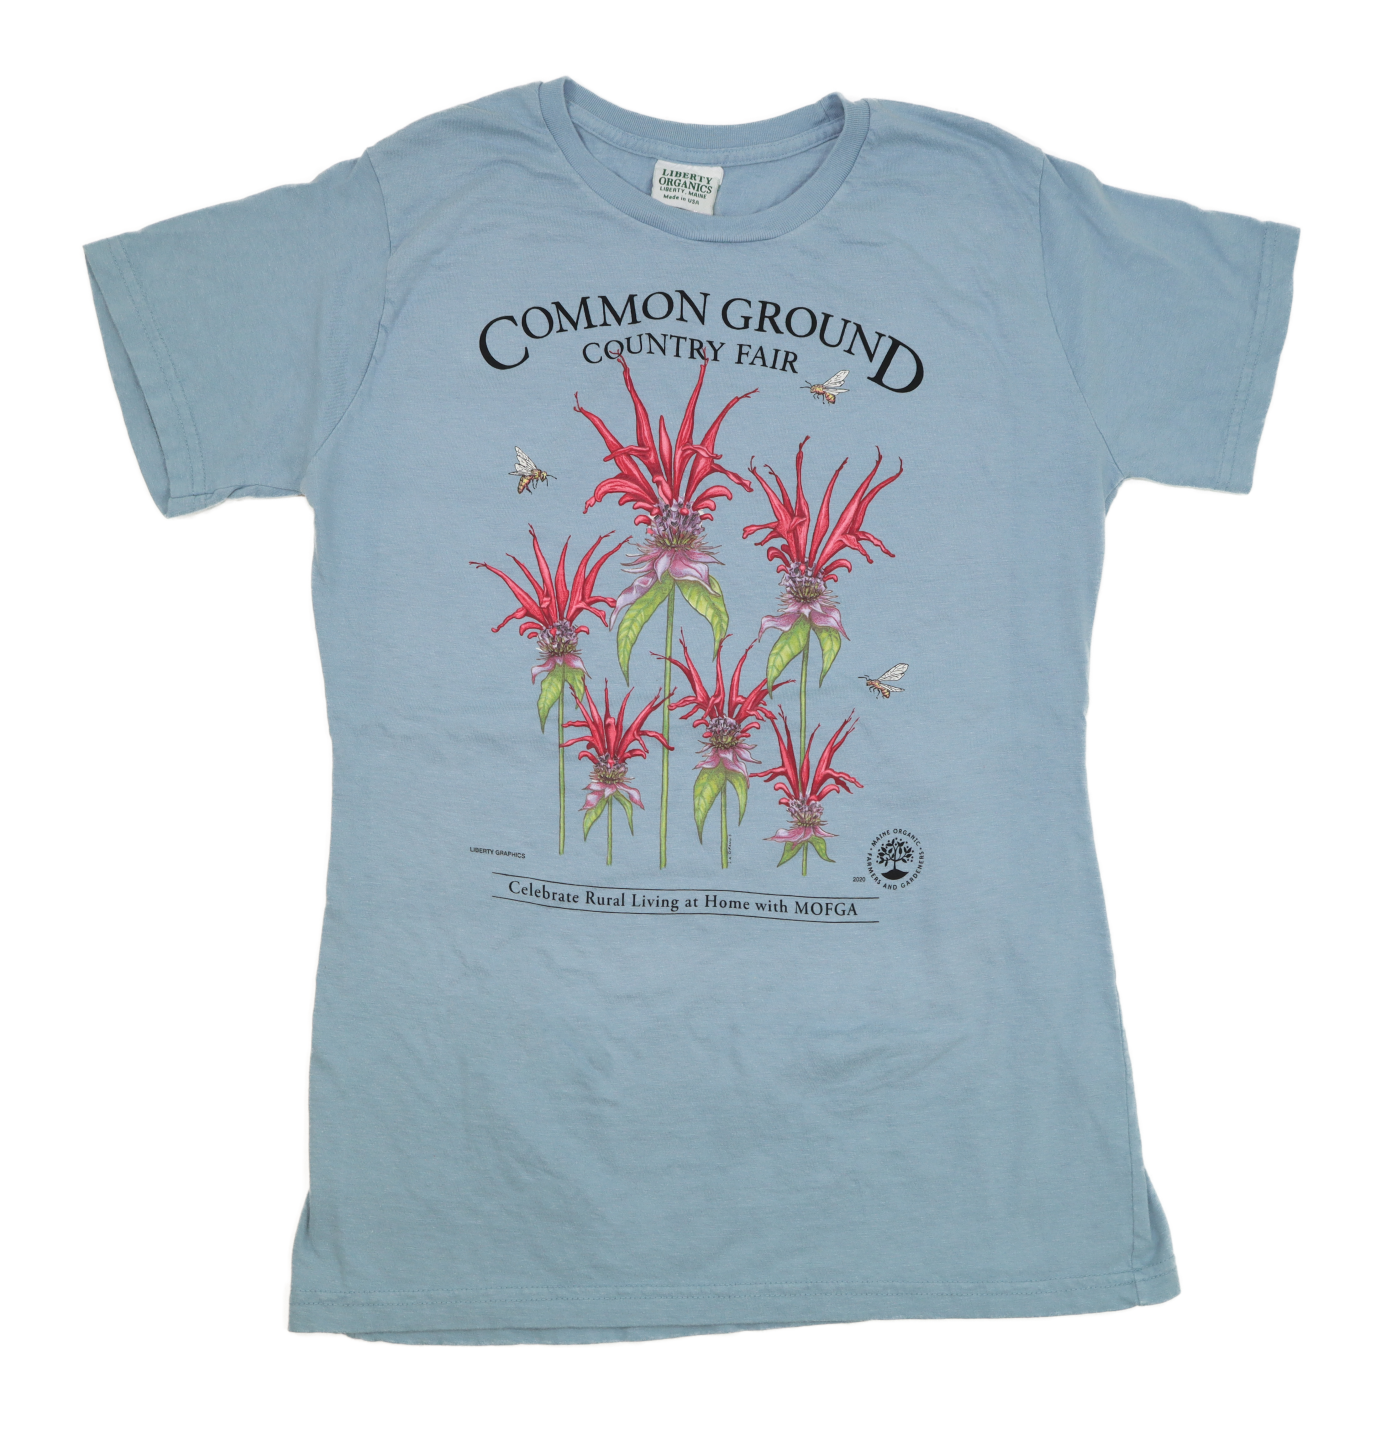 2020 Common Ground Country Fair - Women's Fitted - Short-Sleeved T-shirt